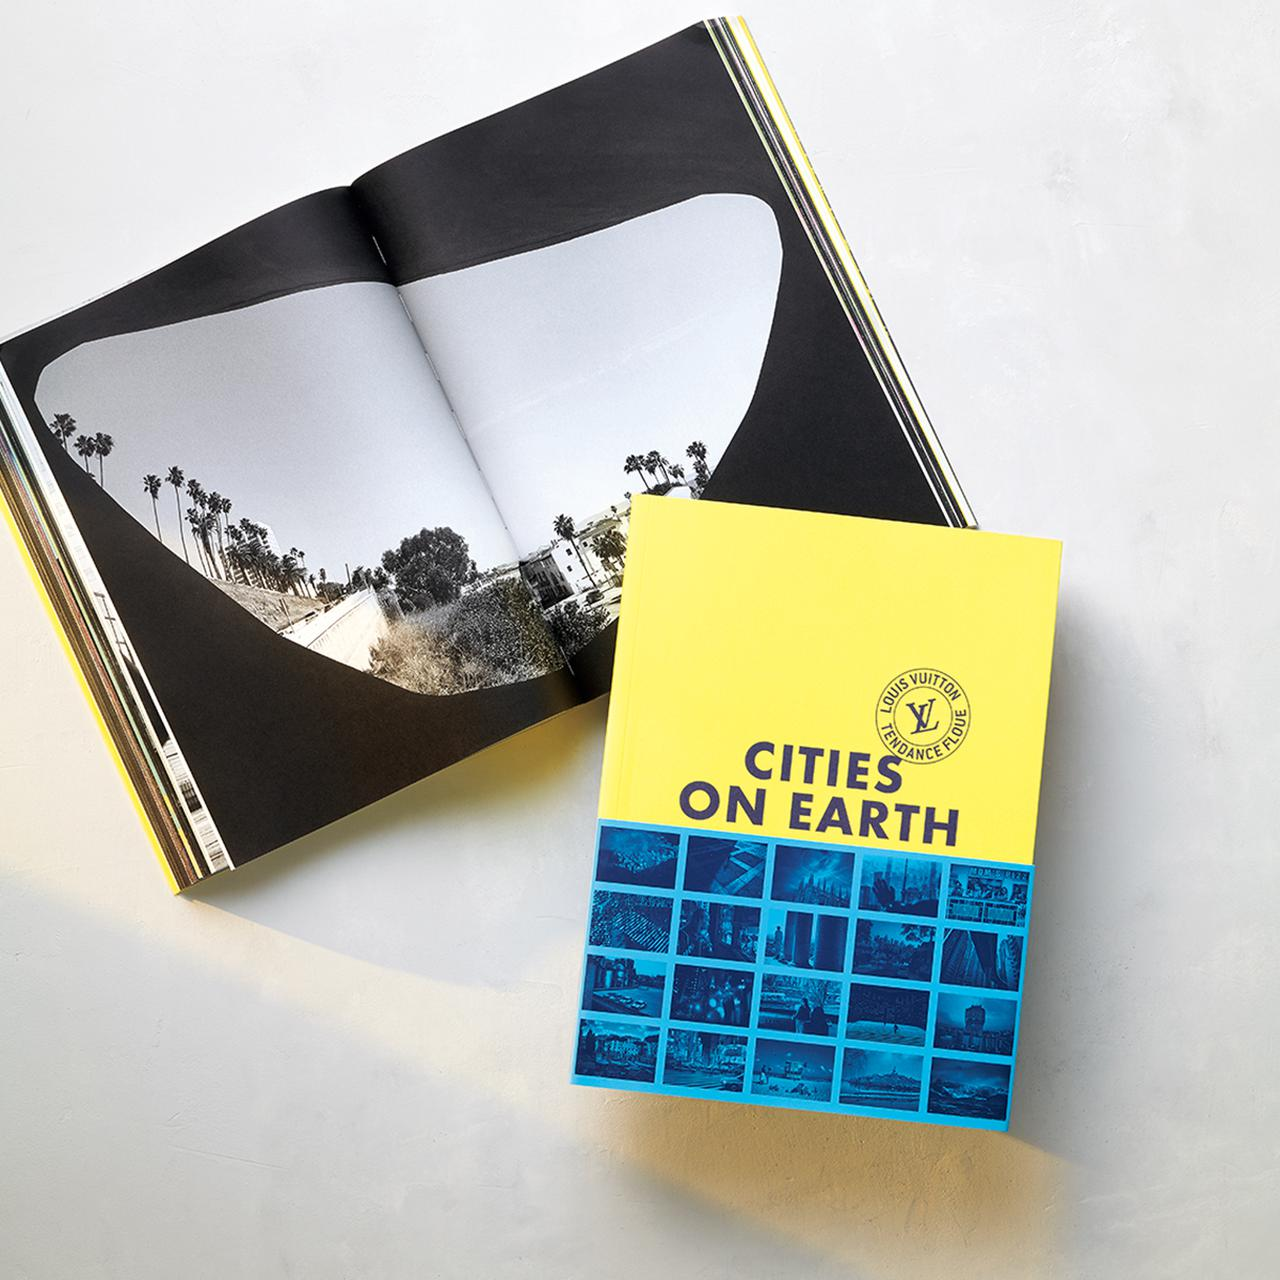 Images : ルイ・ヴィトンの「CITIES ON EARTH 」